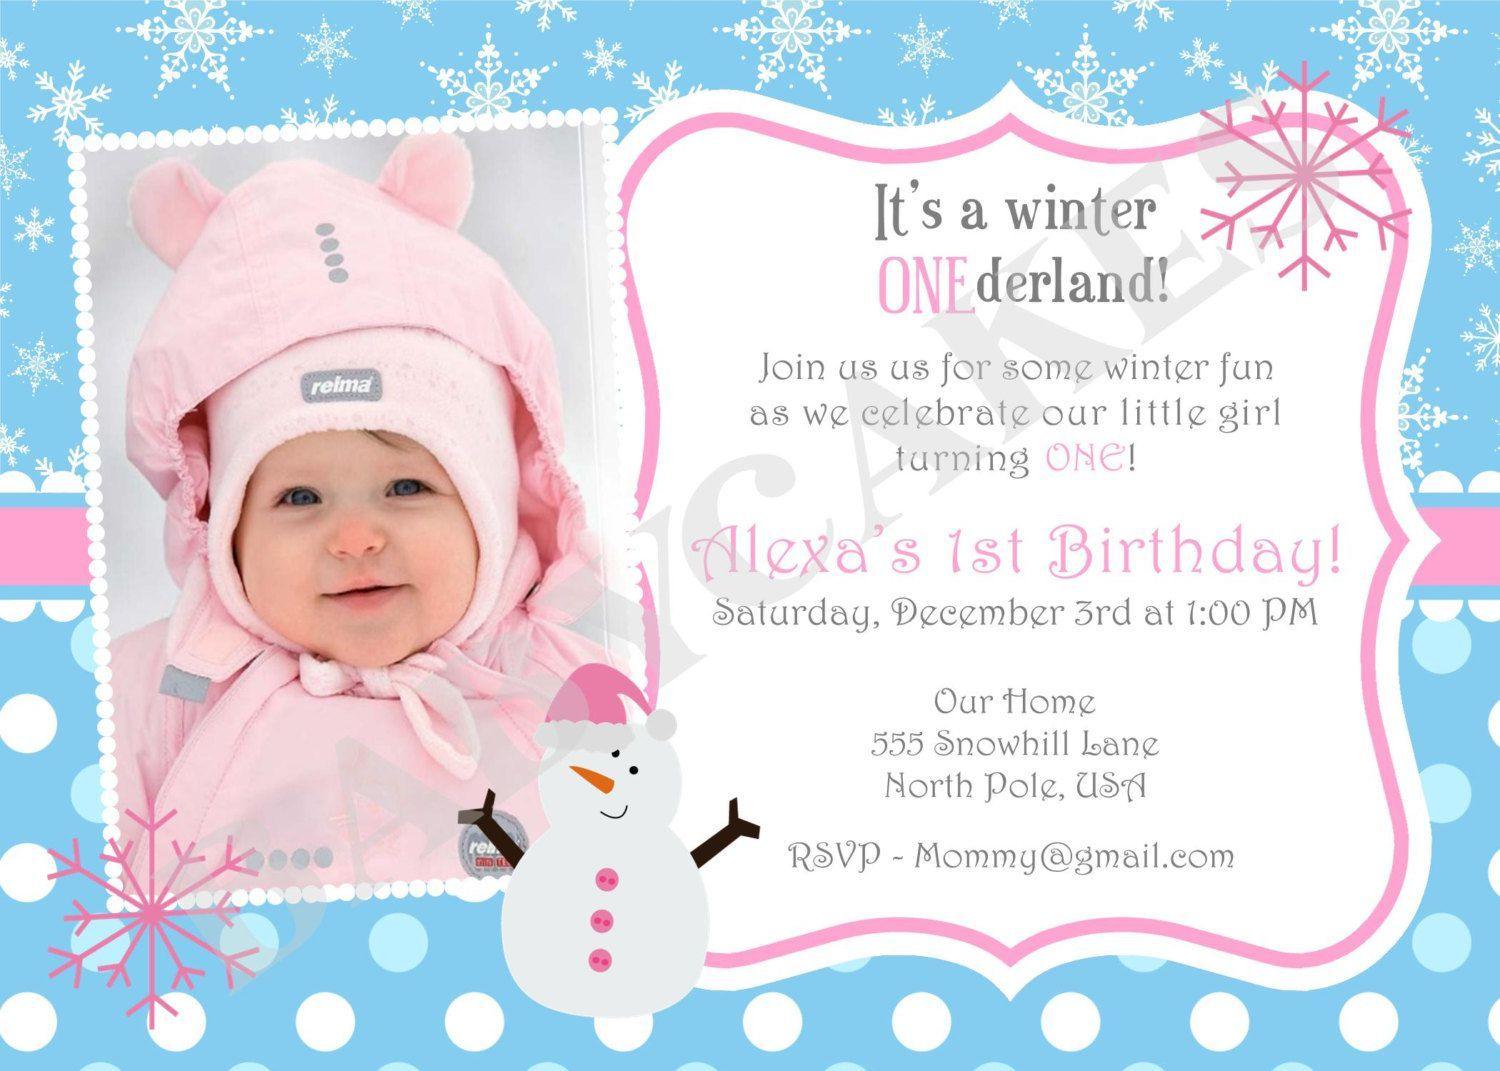 Birthday invitation wording for 6 year old birthday invitations birthday invitation wording for 6 year old stopboris Choice Image